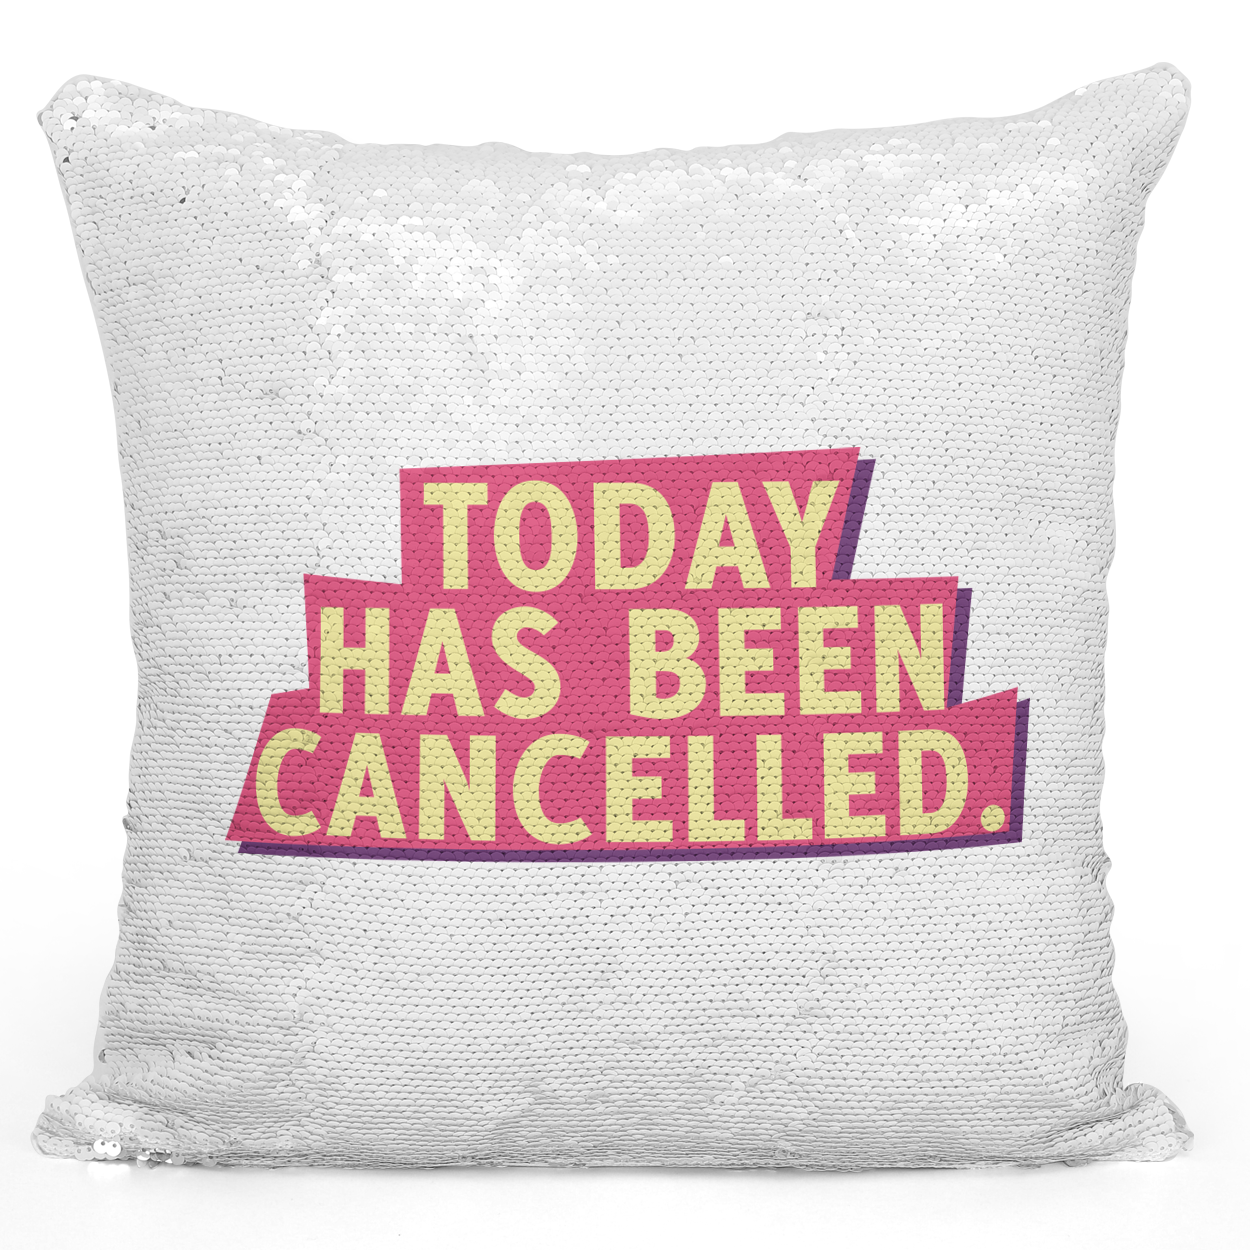 Sequin Pillow Magic Mermaid Throw Pillow Today Has Been Cancelled - High Quality White 16 x 16 inch Square Home Office Decor Accent Pillow Loud Universe